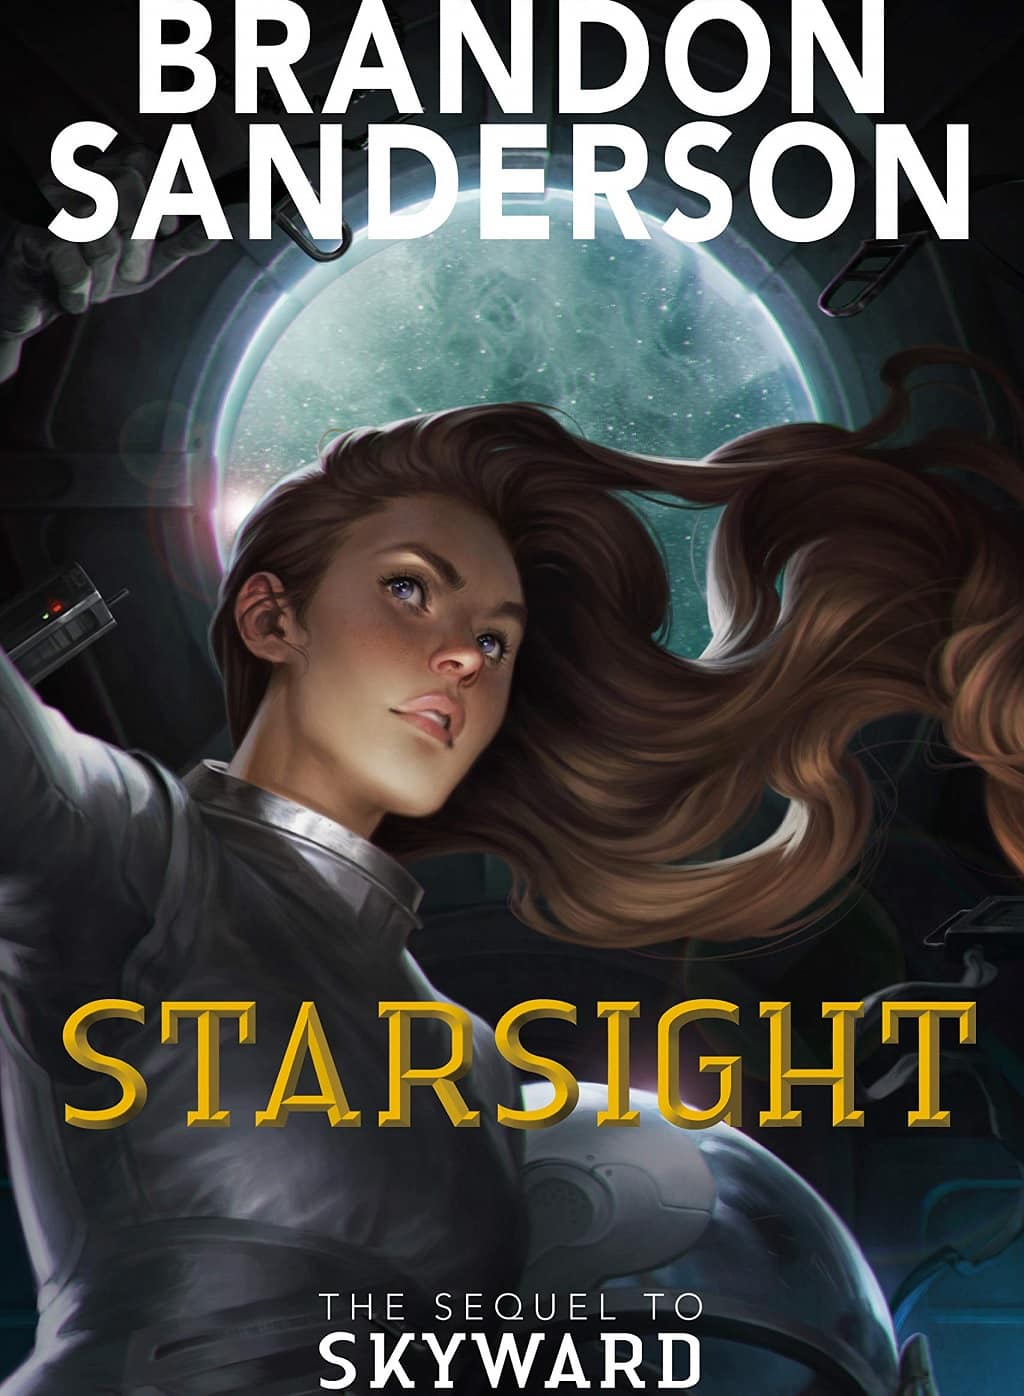 Skyward 2 -Starsight Audiobook Free Download